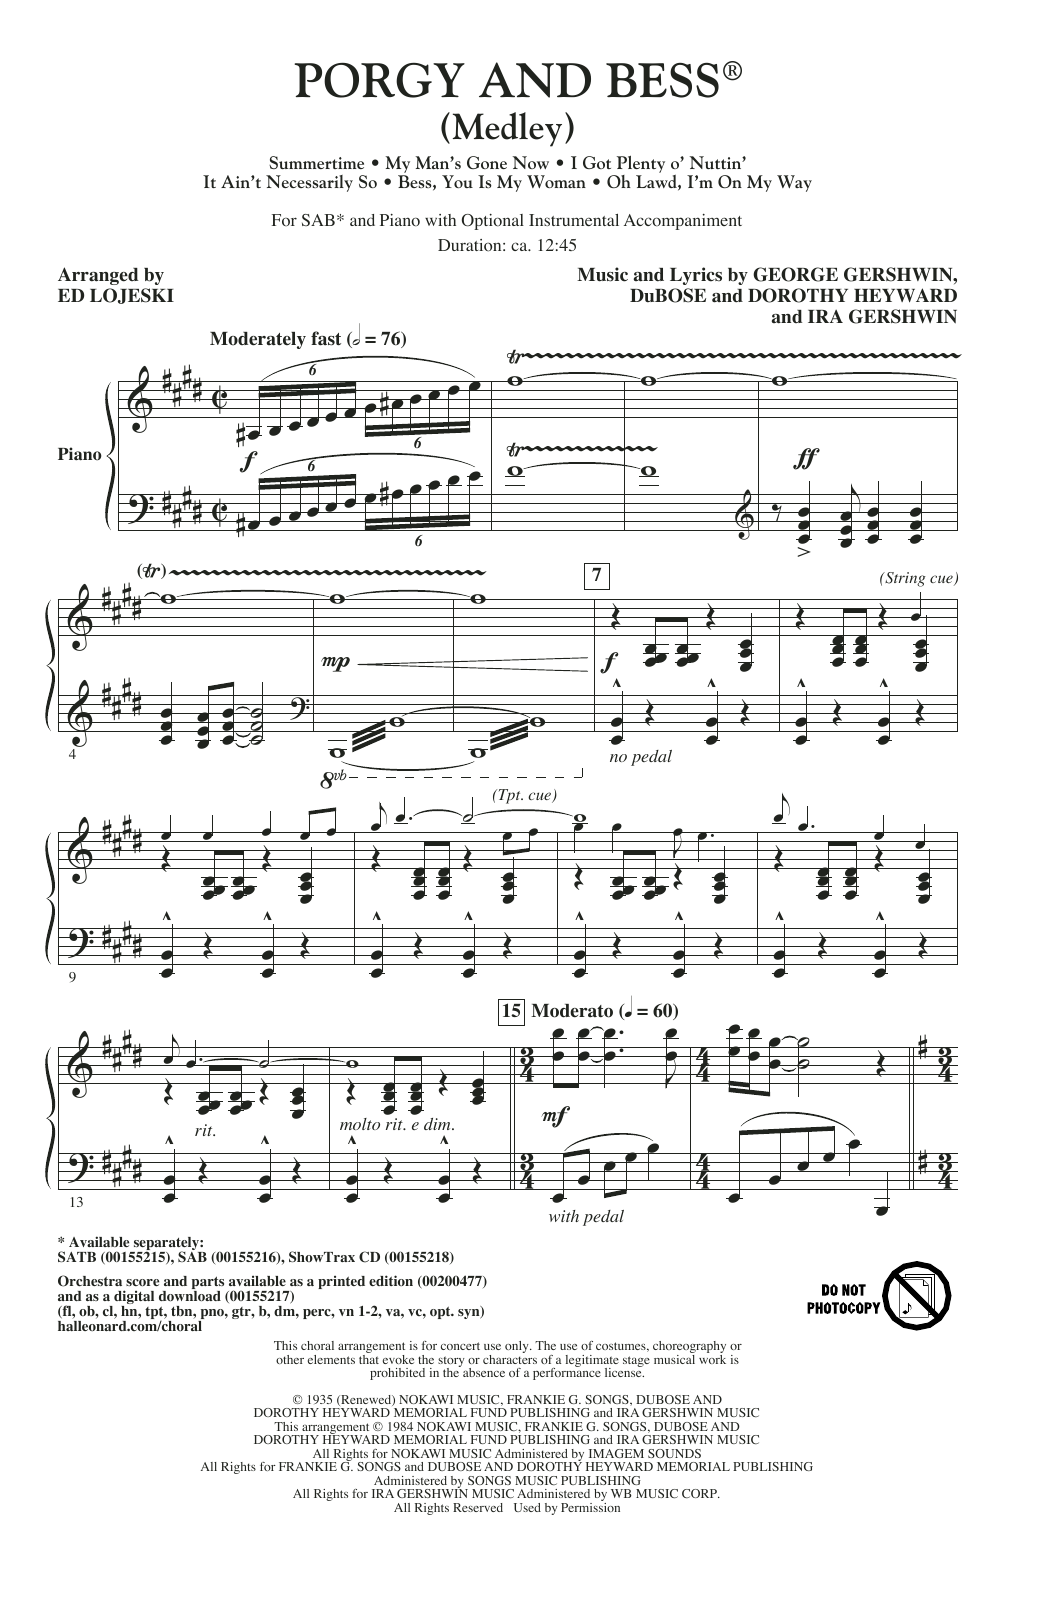 George Gershwin - Porgy And Bess (Medley)